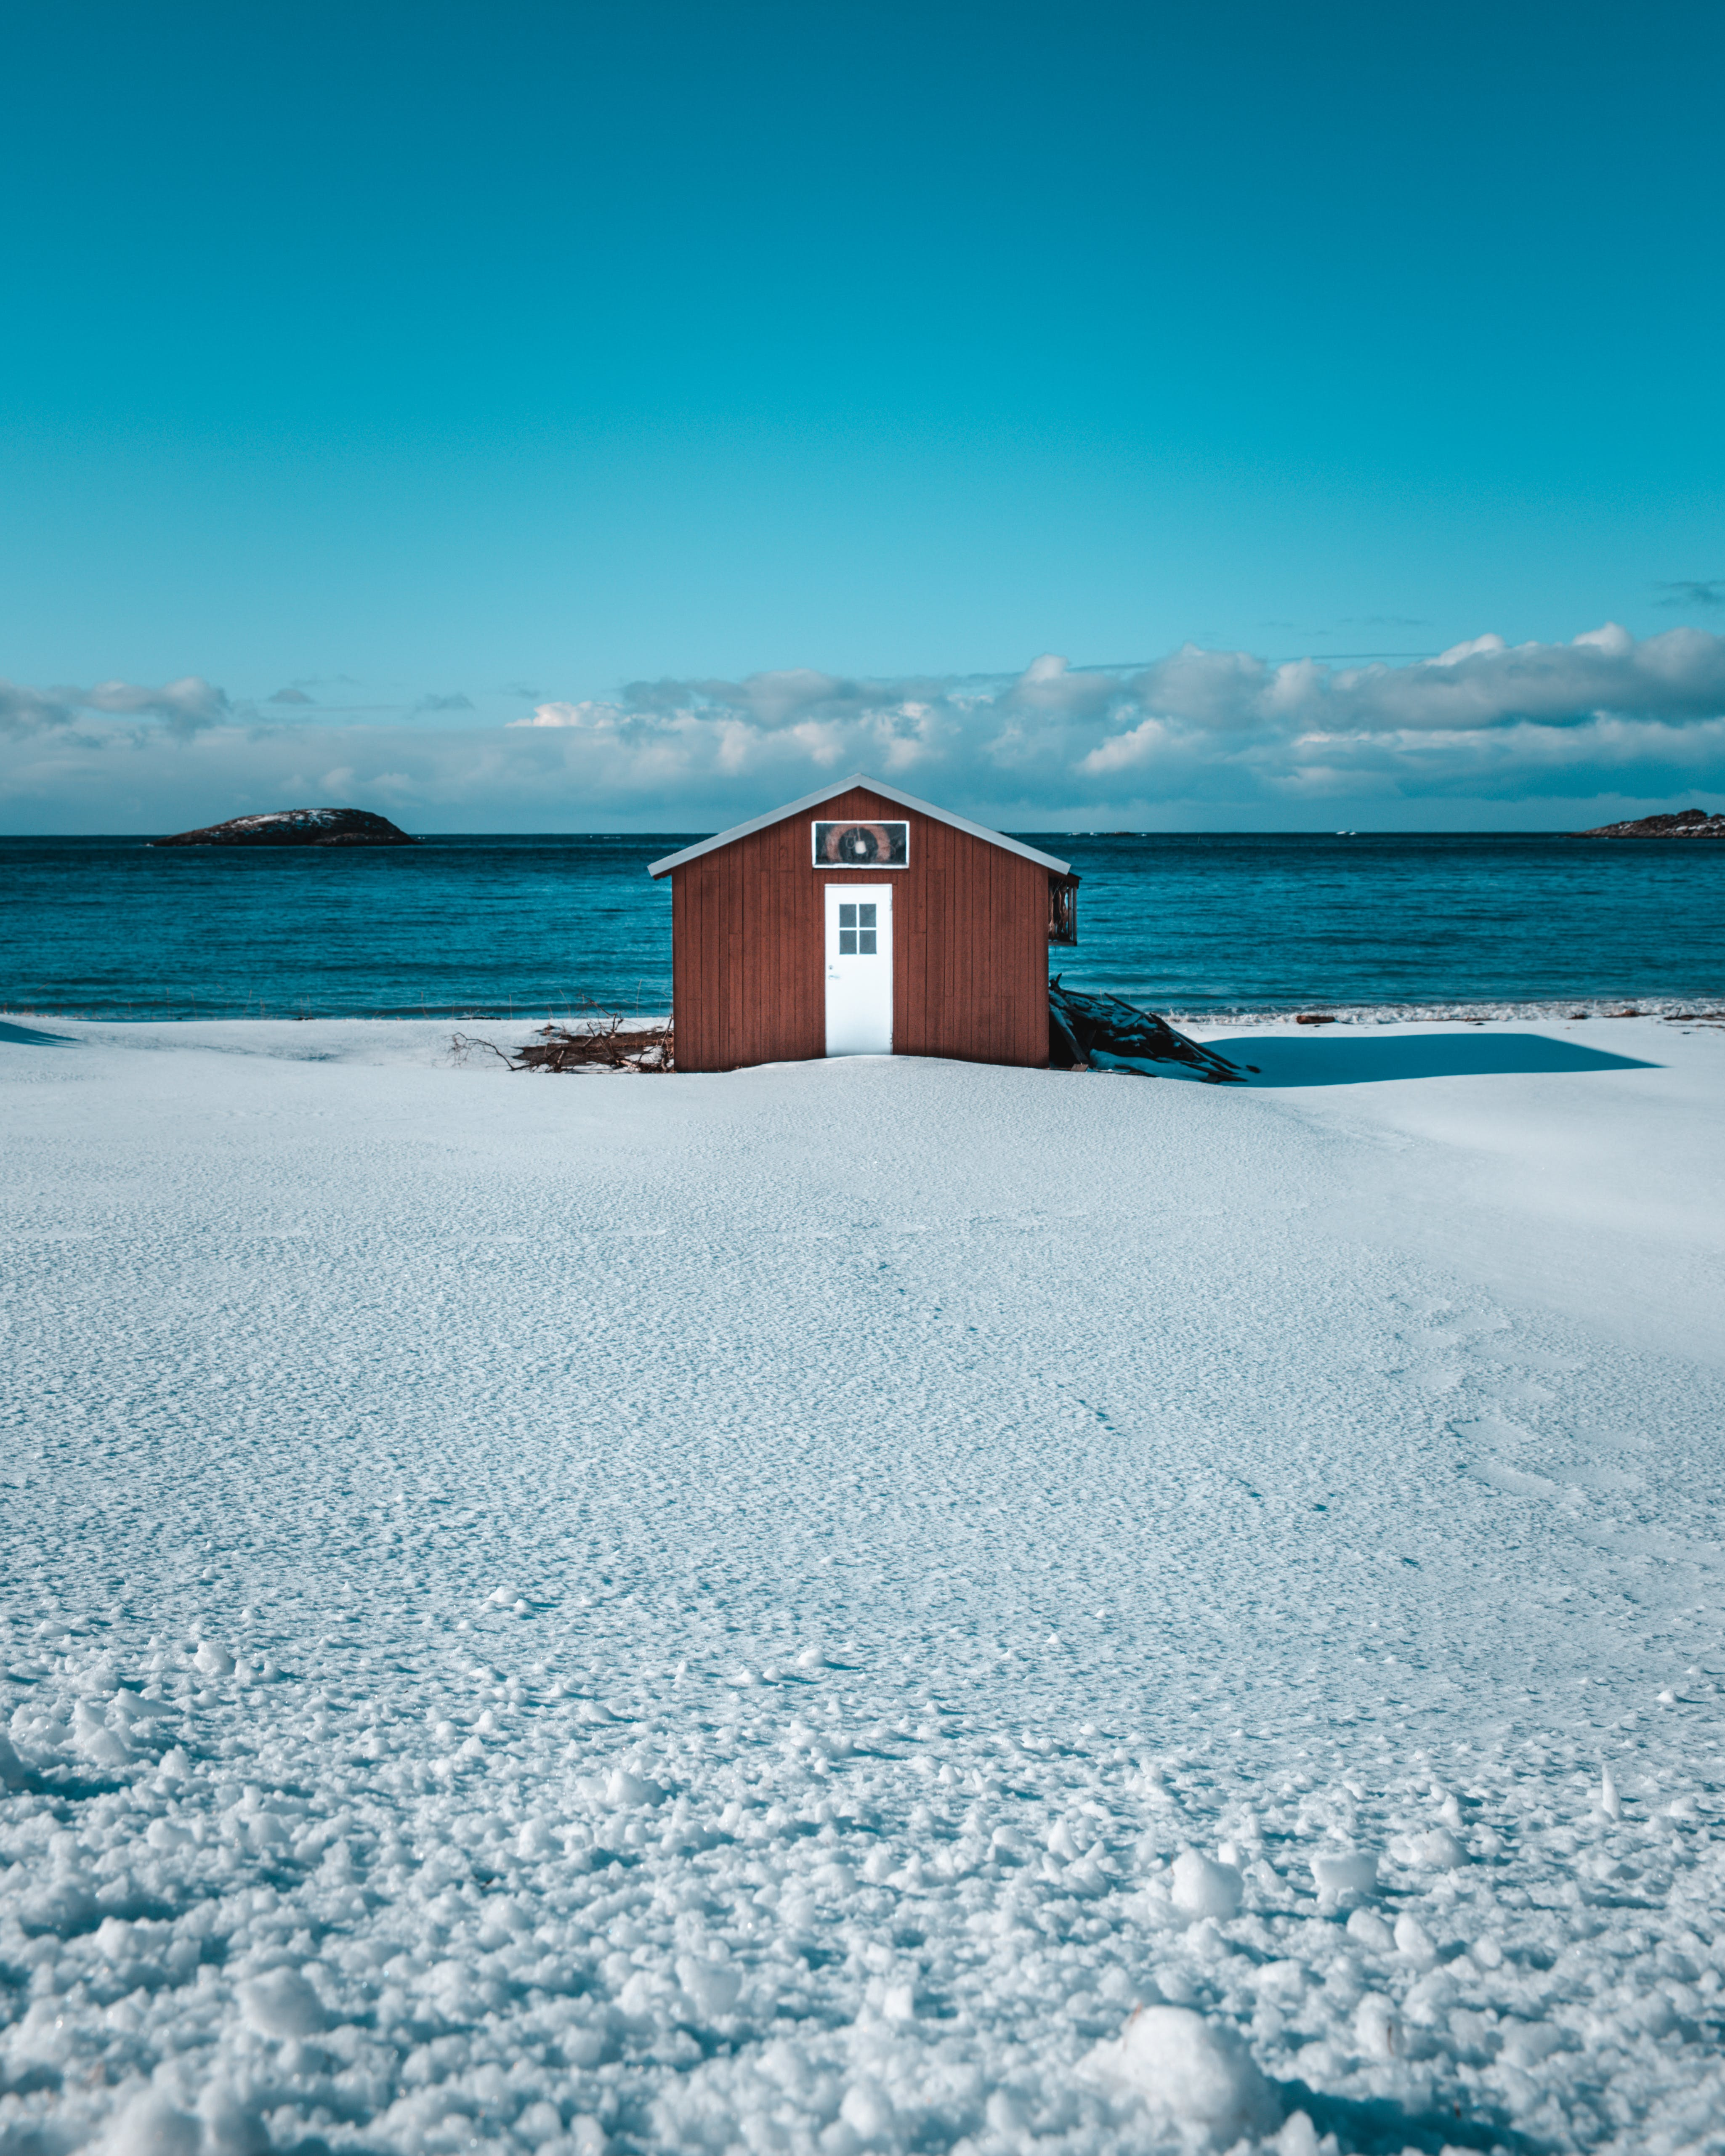 House on Snow Near Body of Water